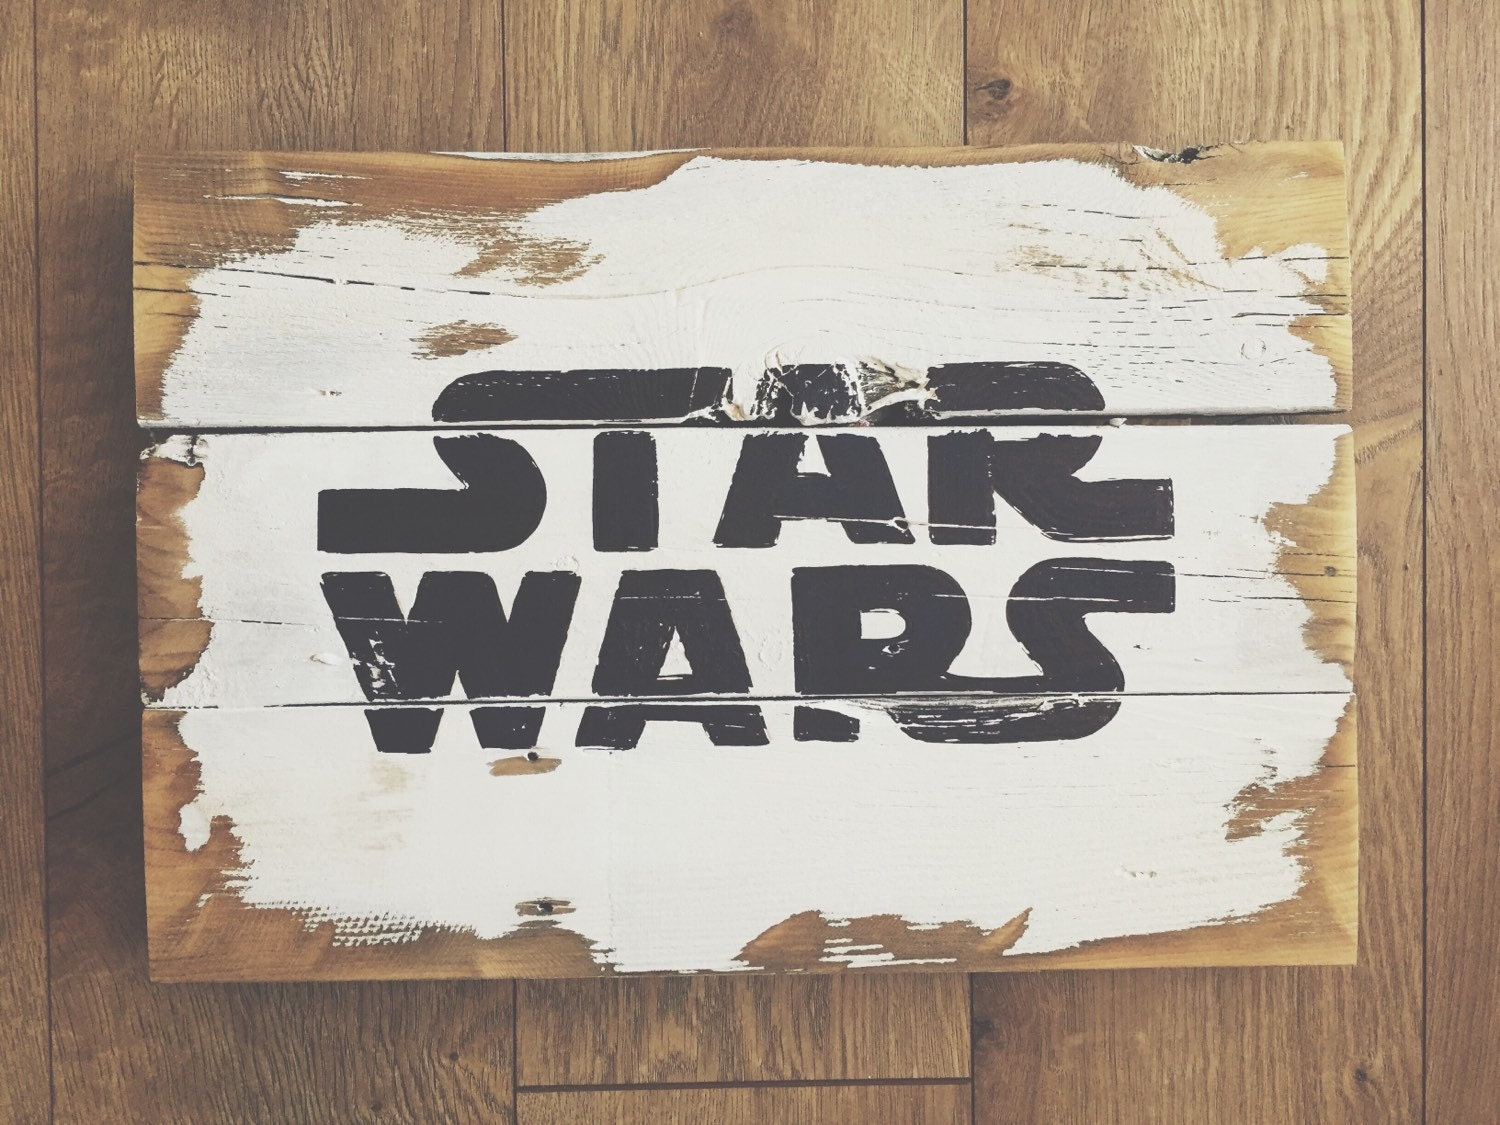 Star Wars Distressed Sign. Southern Florida Bankruptcy Court. New England Universities Us Bank Omaha Bakers. Mt Scott Family Dental Social Network College. State Tested Nursing Assistant. Signs And Symptoms Rheumatoid Arthritis. Are Dentists Called Doctors Plumbers In York. Dog Barking Alarm System Inline Plumbing Utah. How To Build A Membership Site